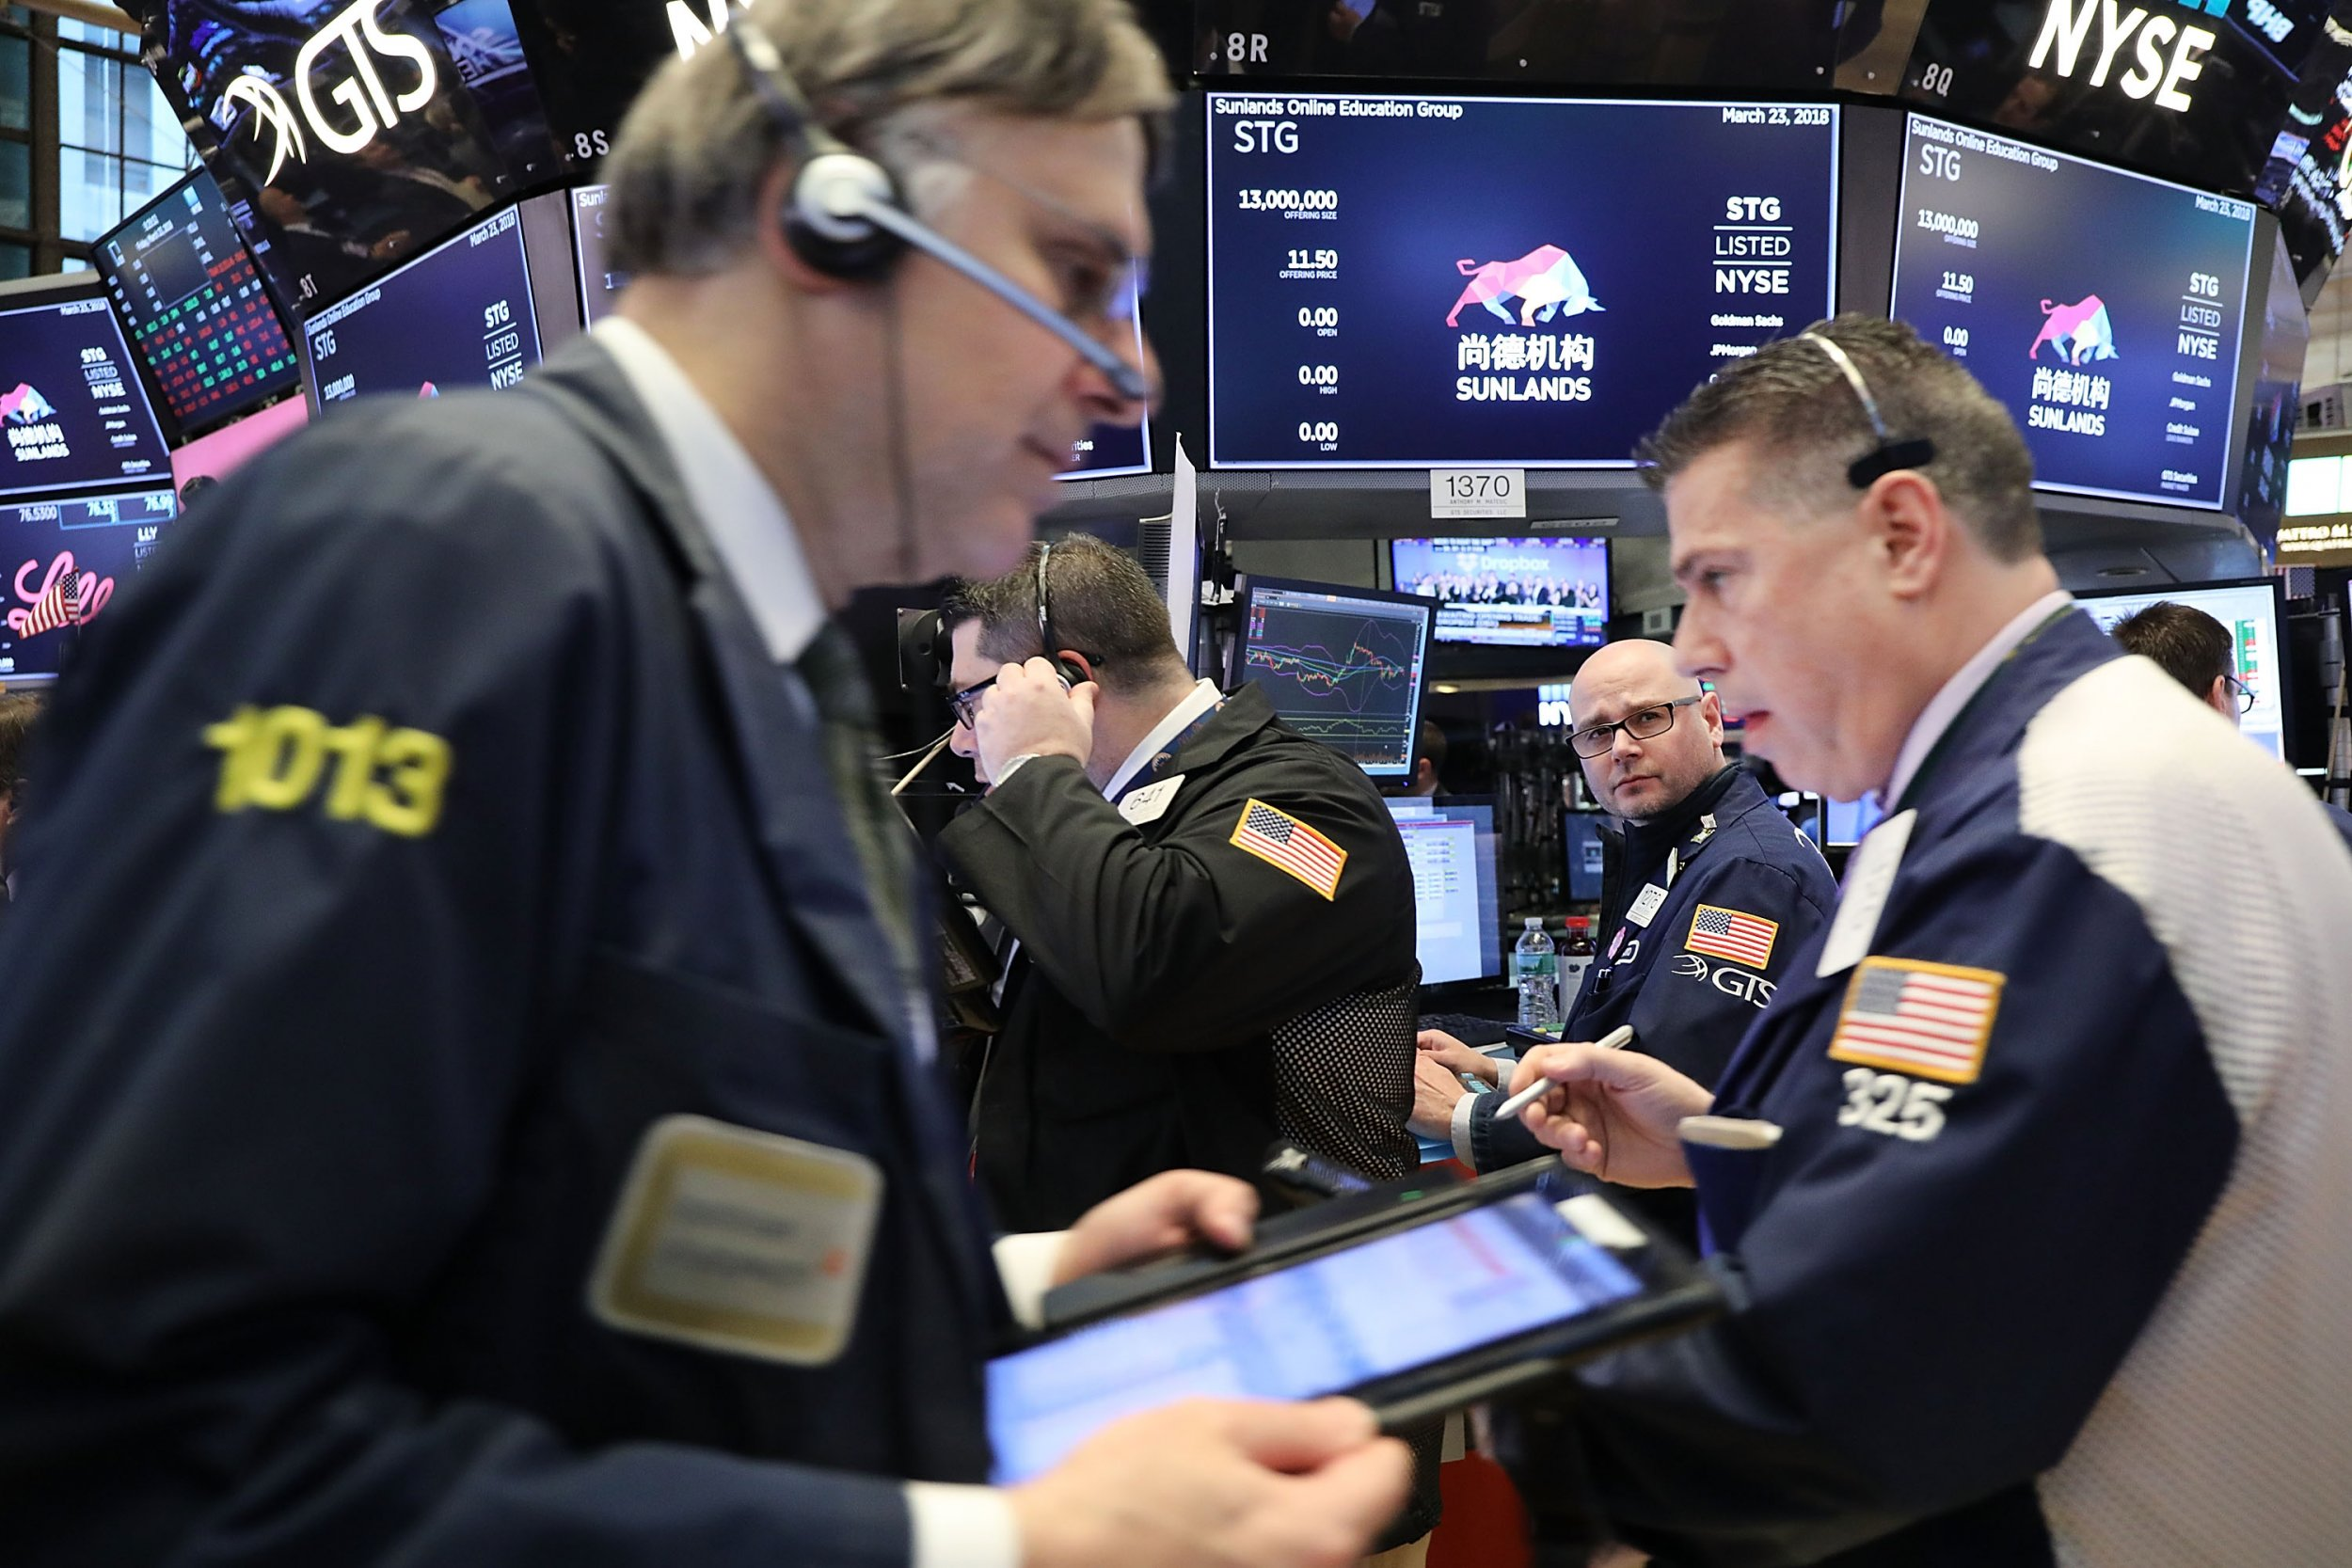 Next Recession Could Hit Before 2020 Election: Analysts